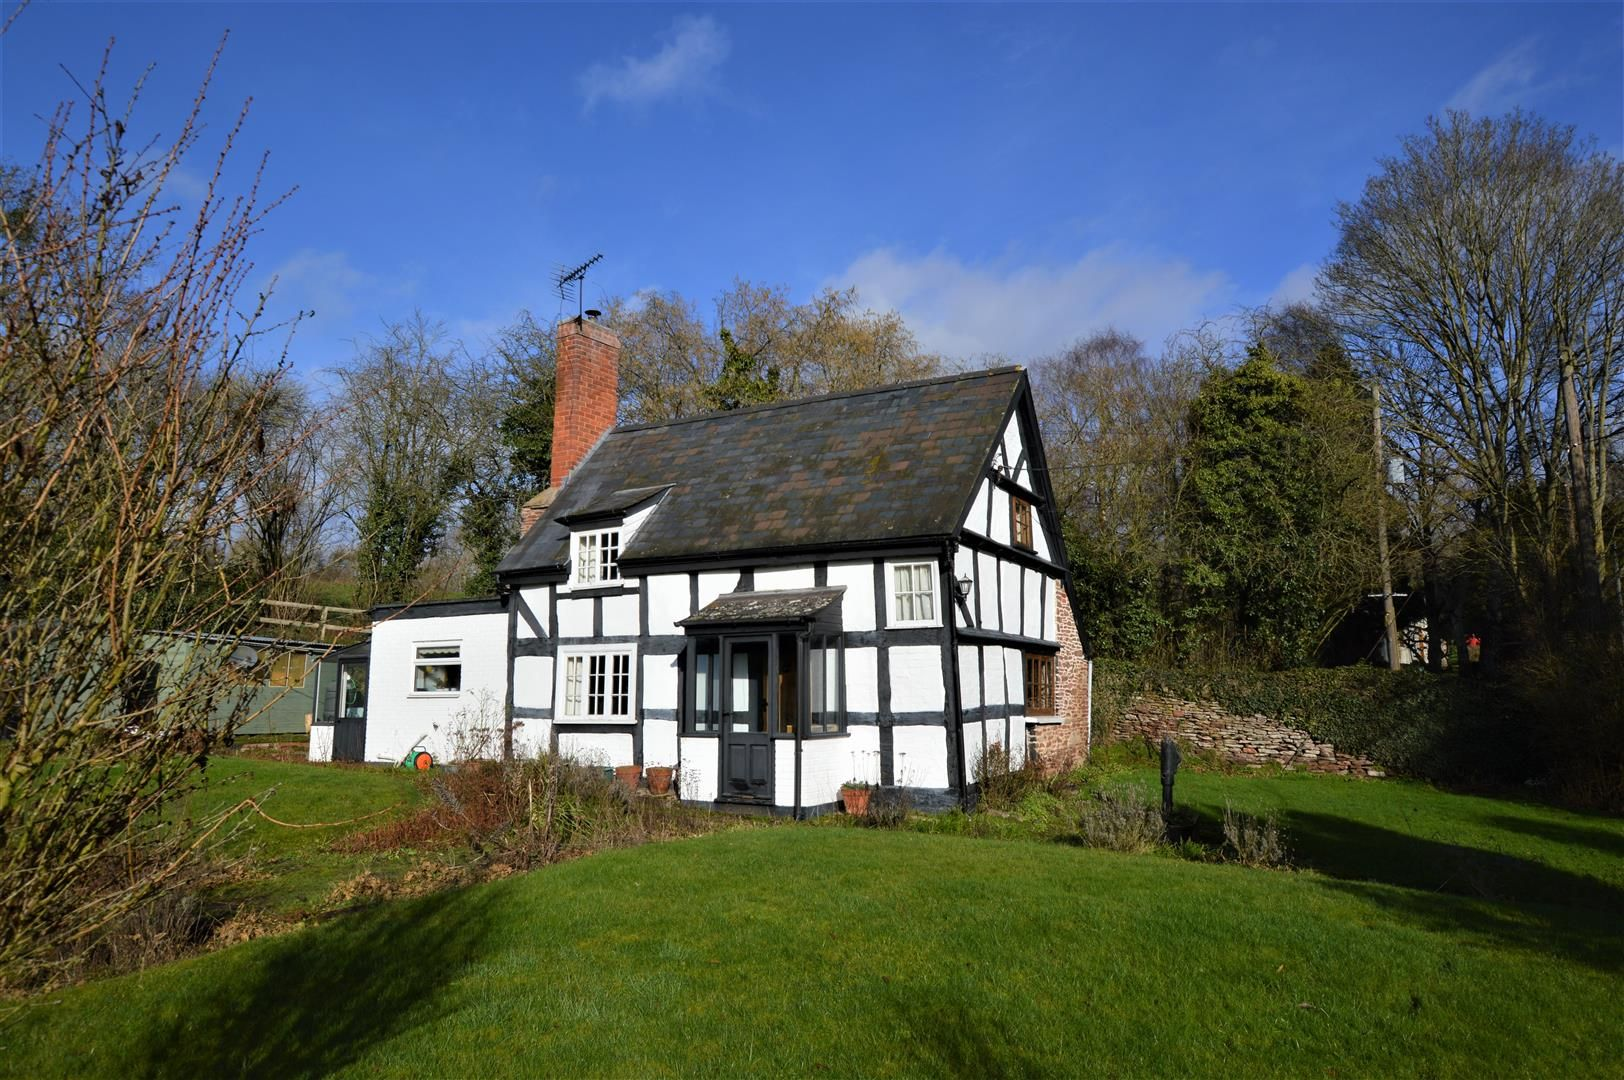 2 bed cottage for sale in Bodenham, HR1